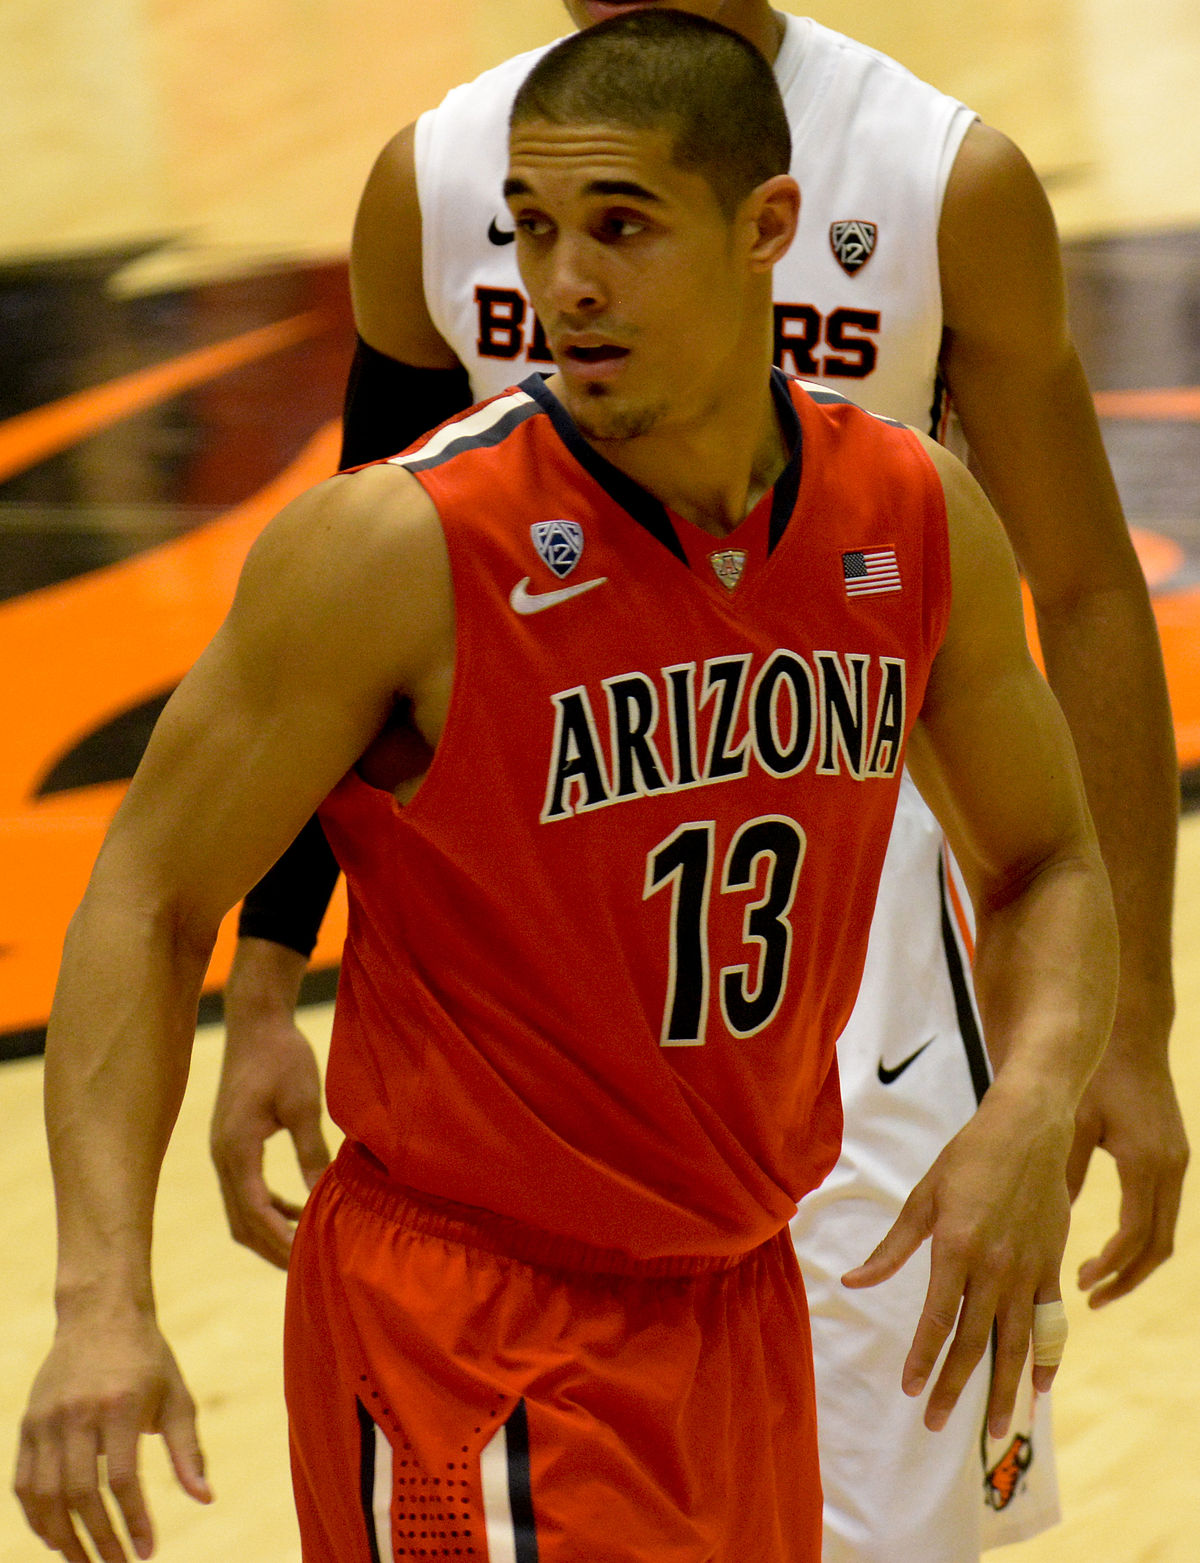 hot sale online 5d4a2 8dbb9 Nick Johnson (basketball) - Wikipedia